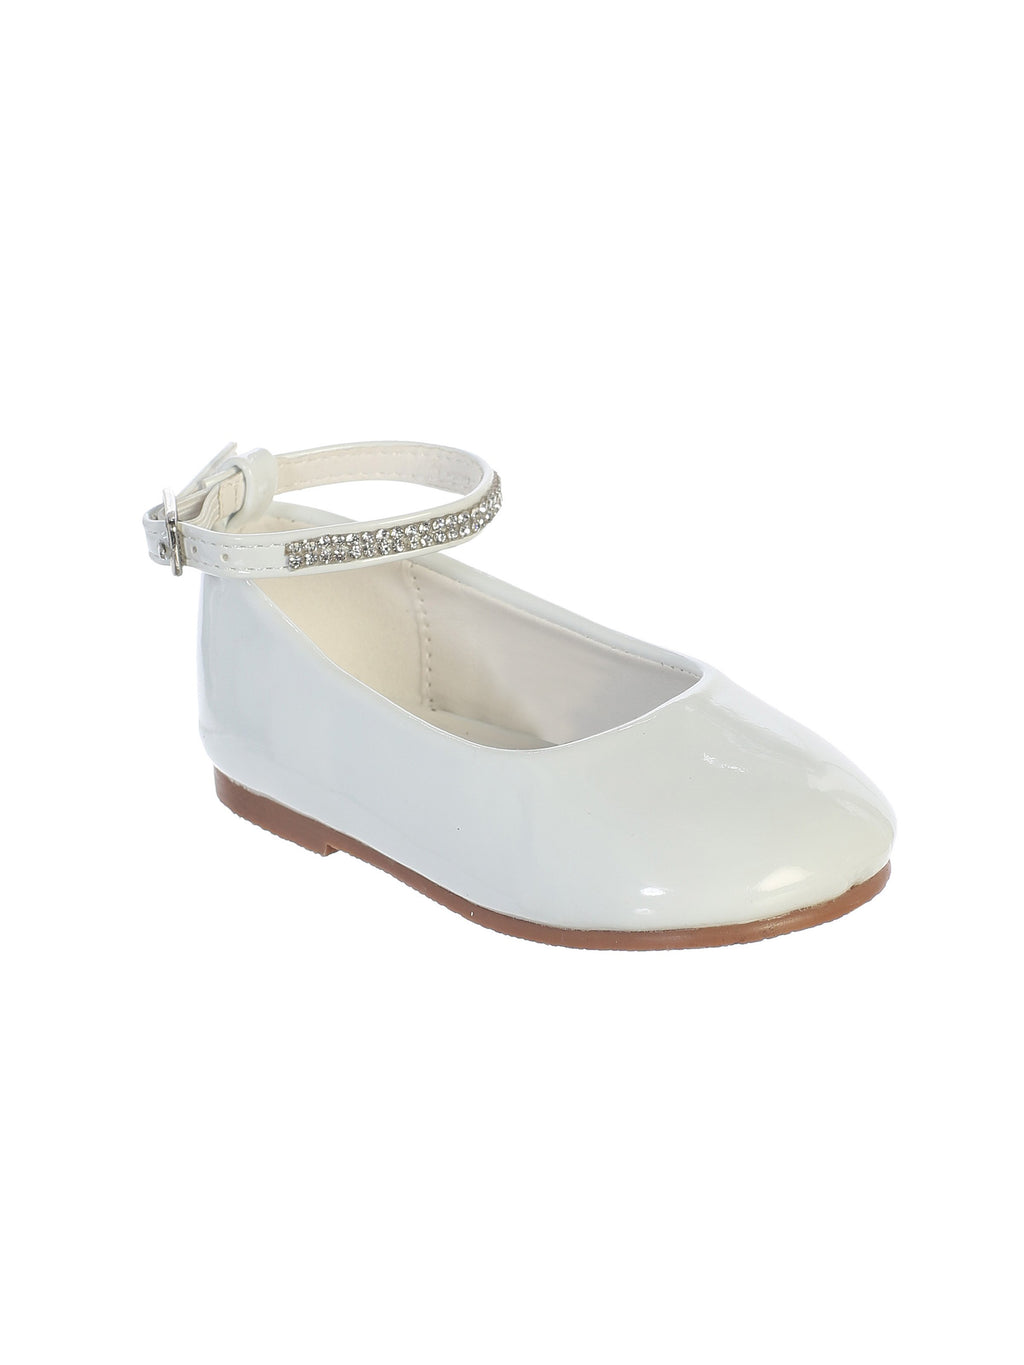 White Flats with Rhinestone Strap